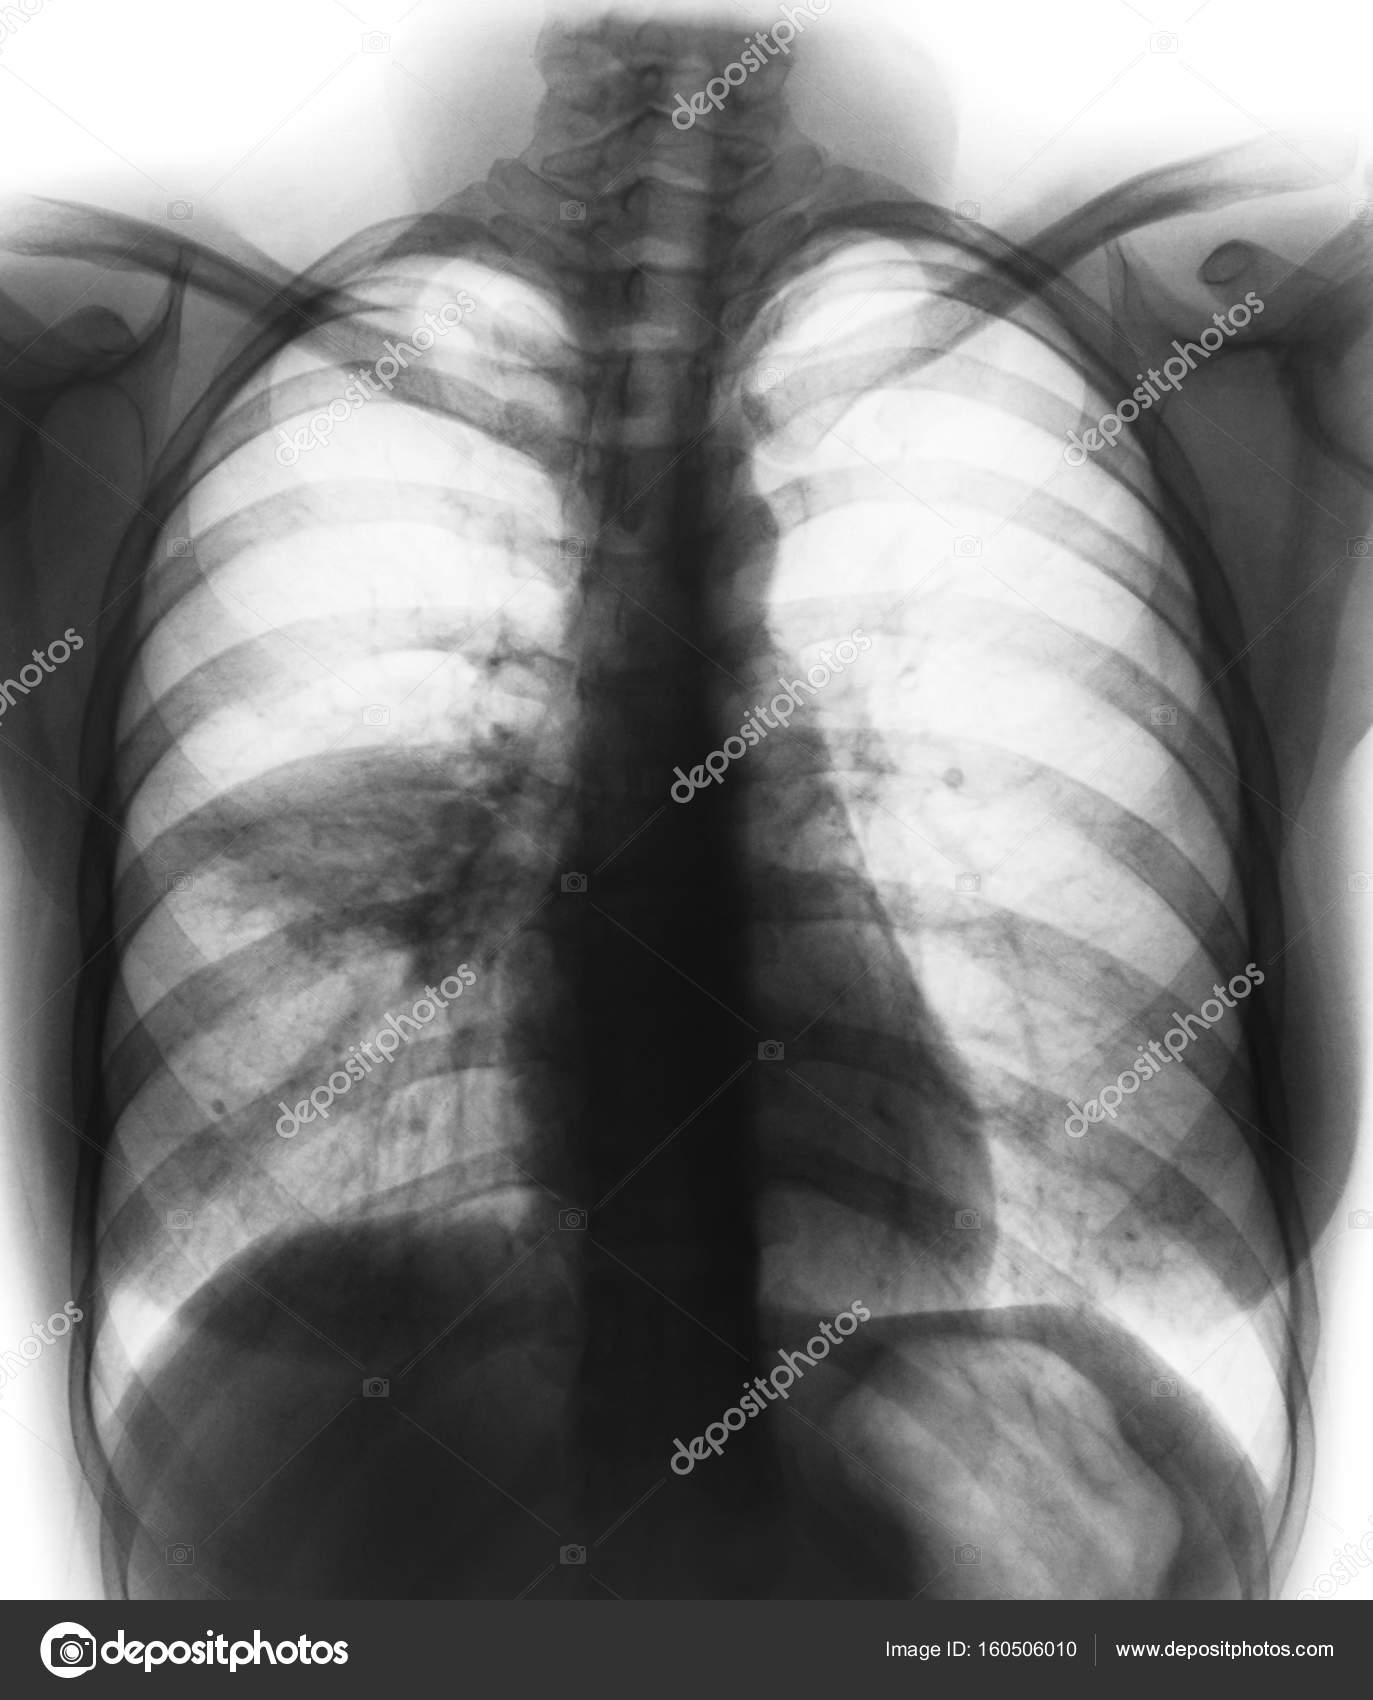 Pneumonia Film Chest X Ray Show Alveolar Infiltrate At Right